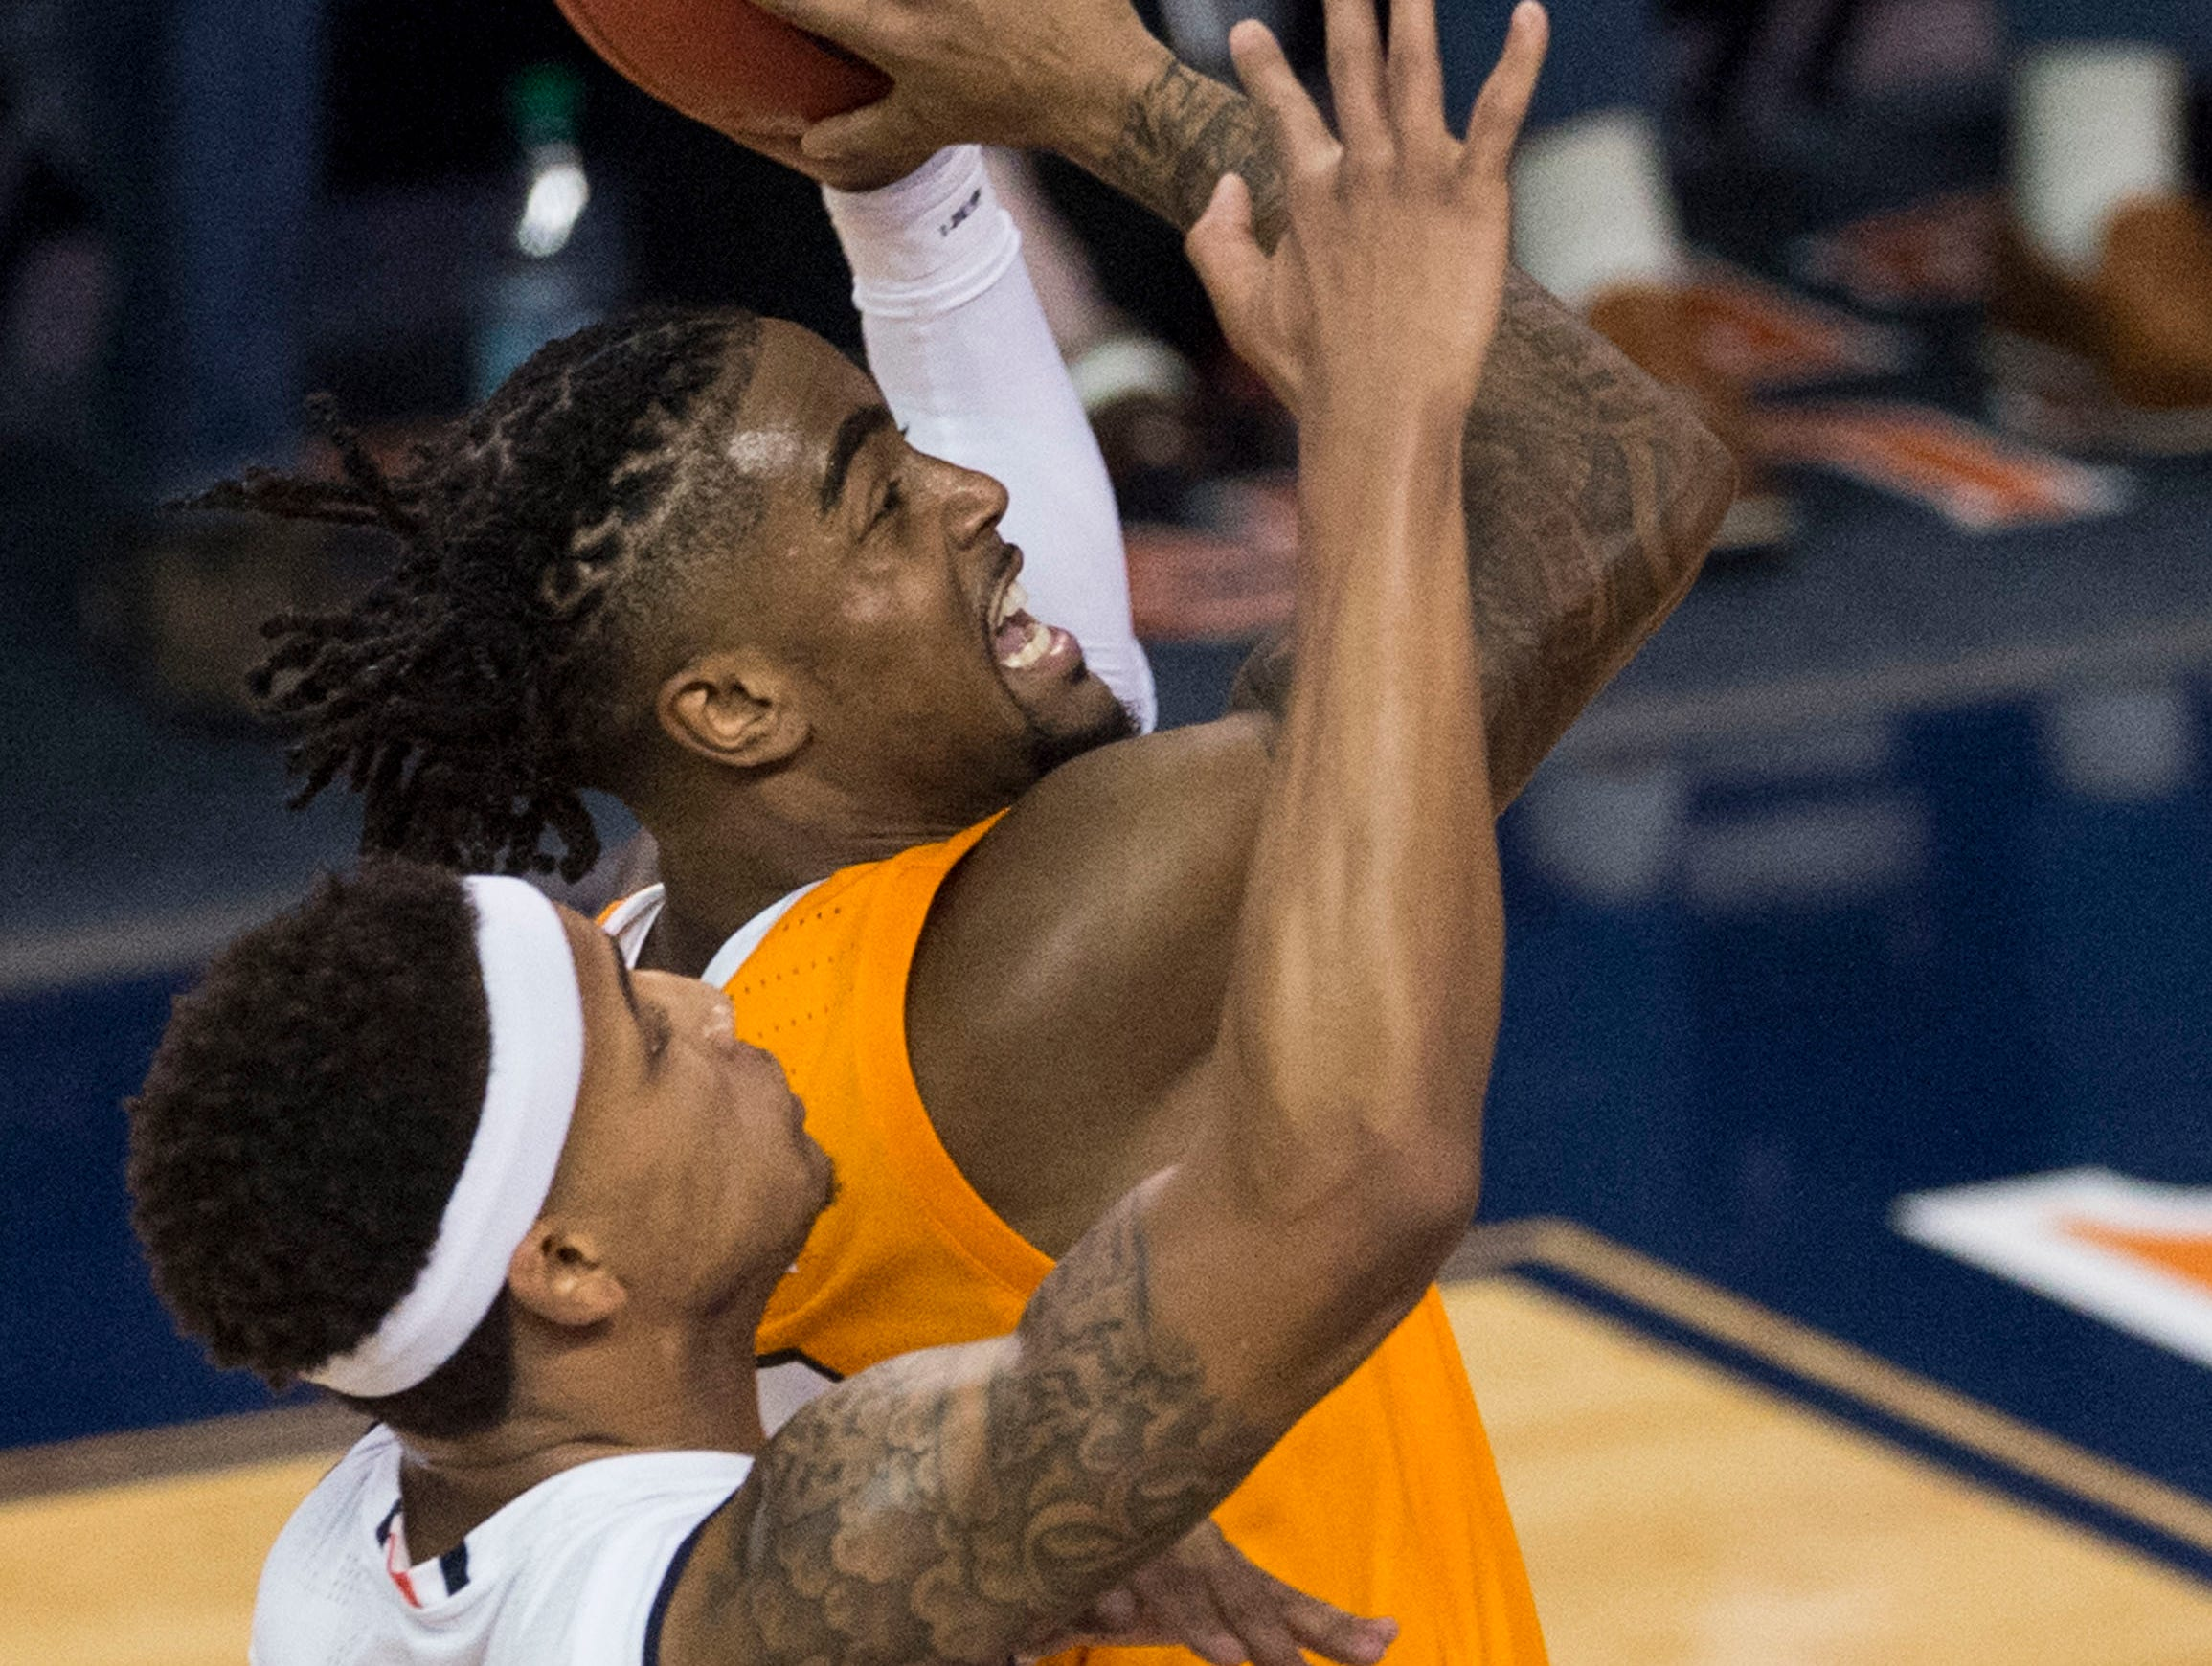 Tennessee guard Jordan Bone (0) goes up for a layup over Auburn guard Bryce Brown (2) at Auburn Arena in Auburn, Ala., on Saturday, March 9, 2019. Auburn defeated Tennessee 84-80.